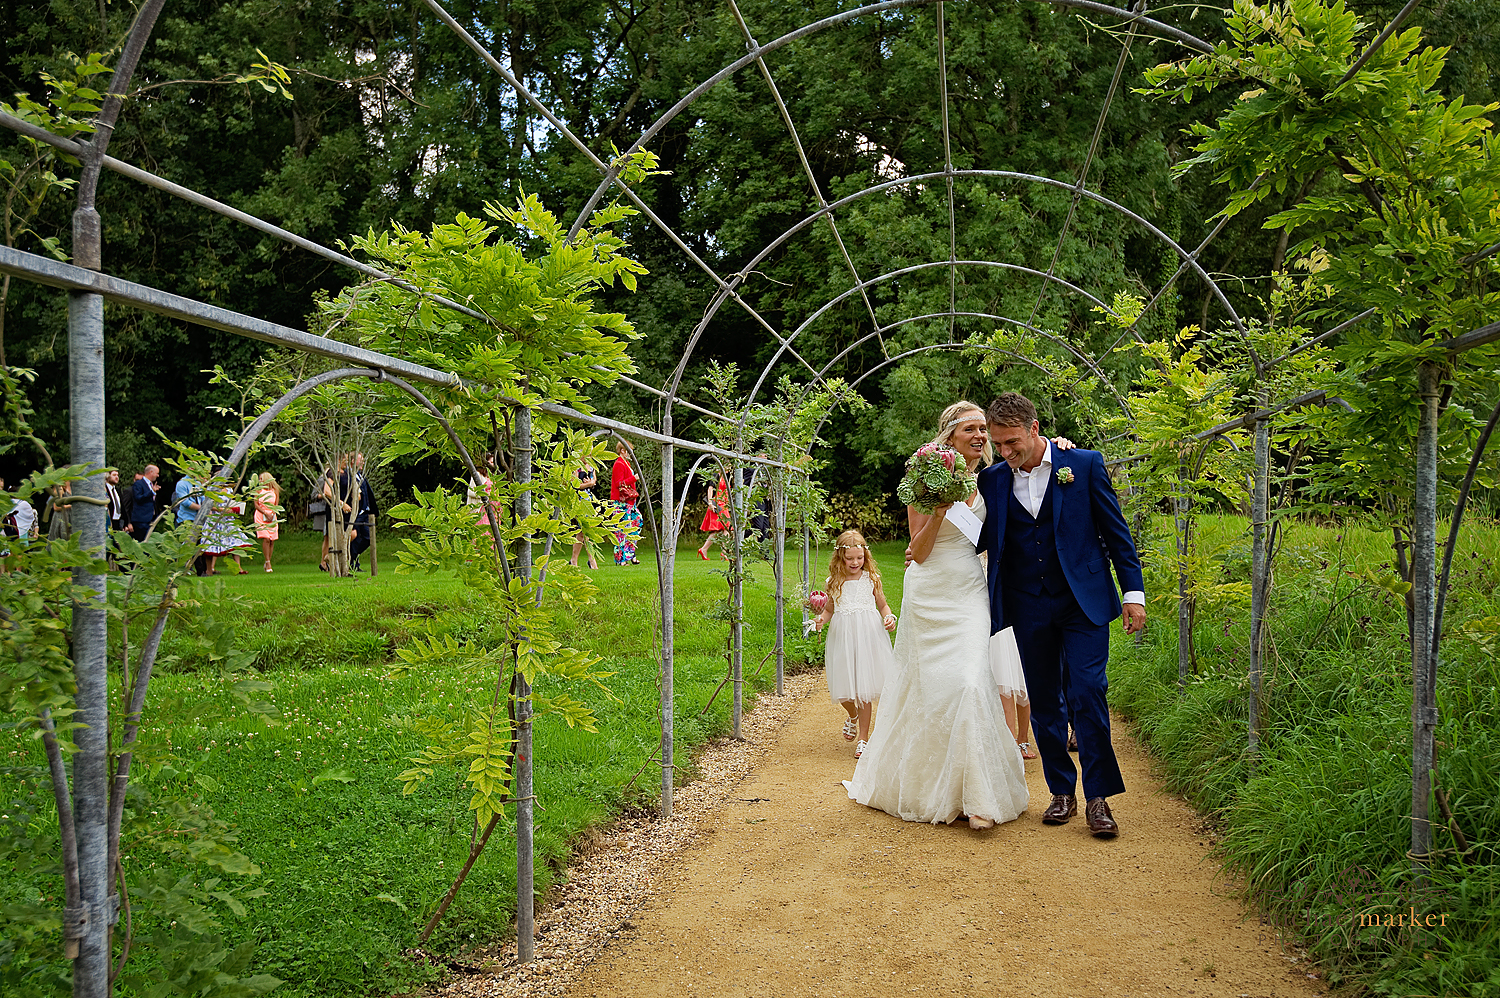 Bride and groom walking through the arbour walk at the Deer Park Hotel